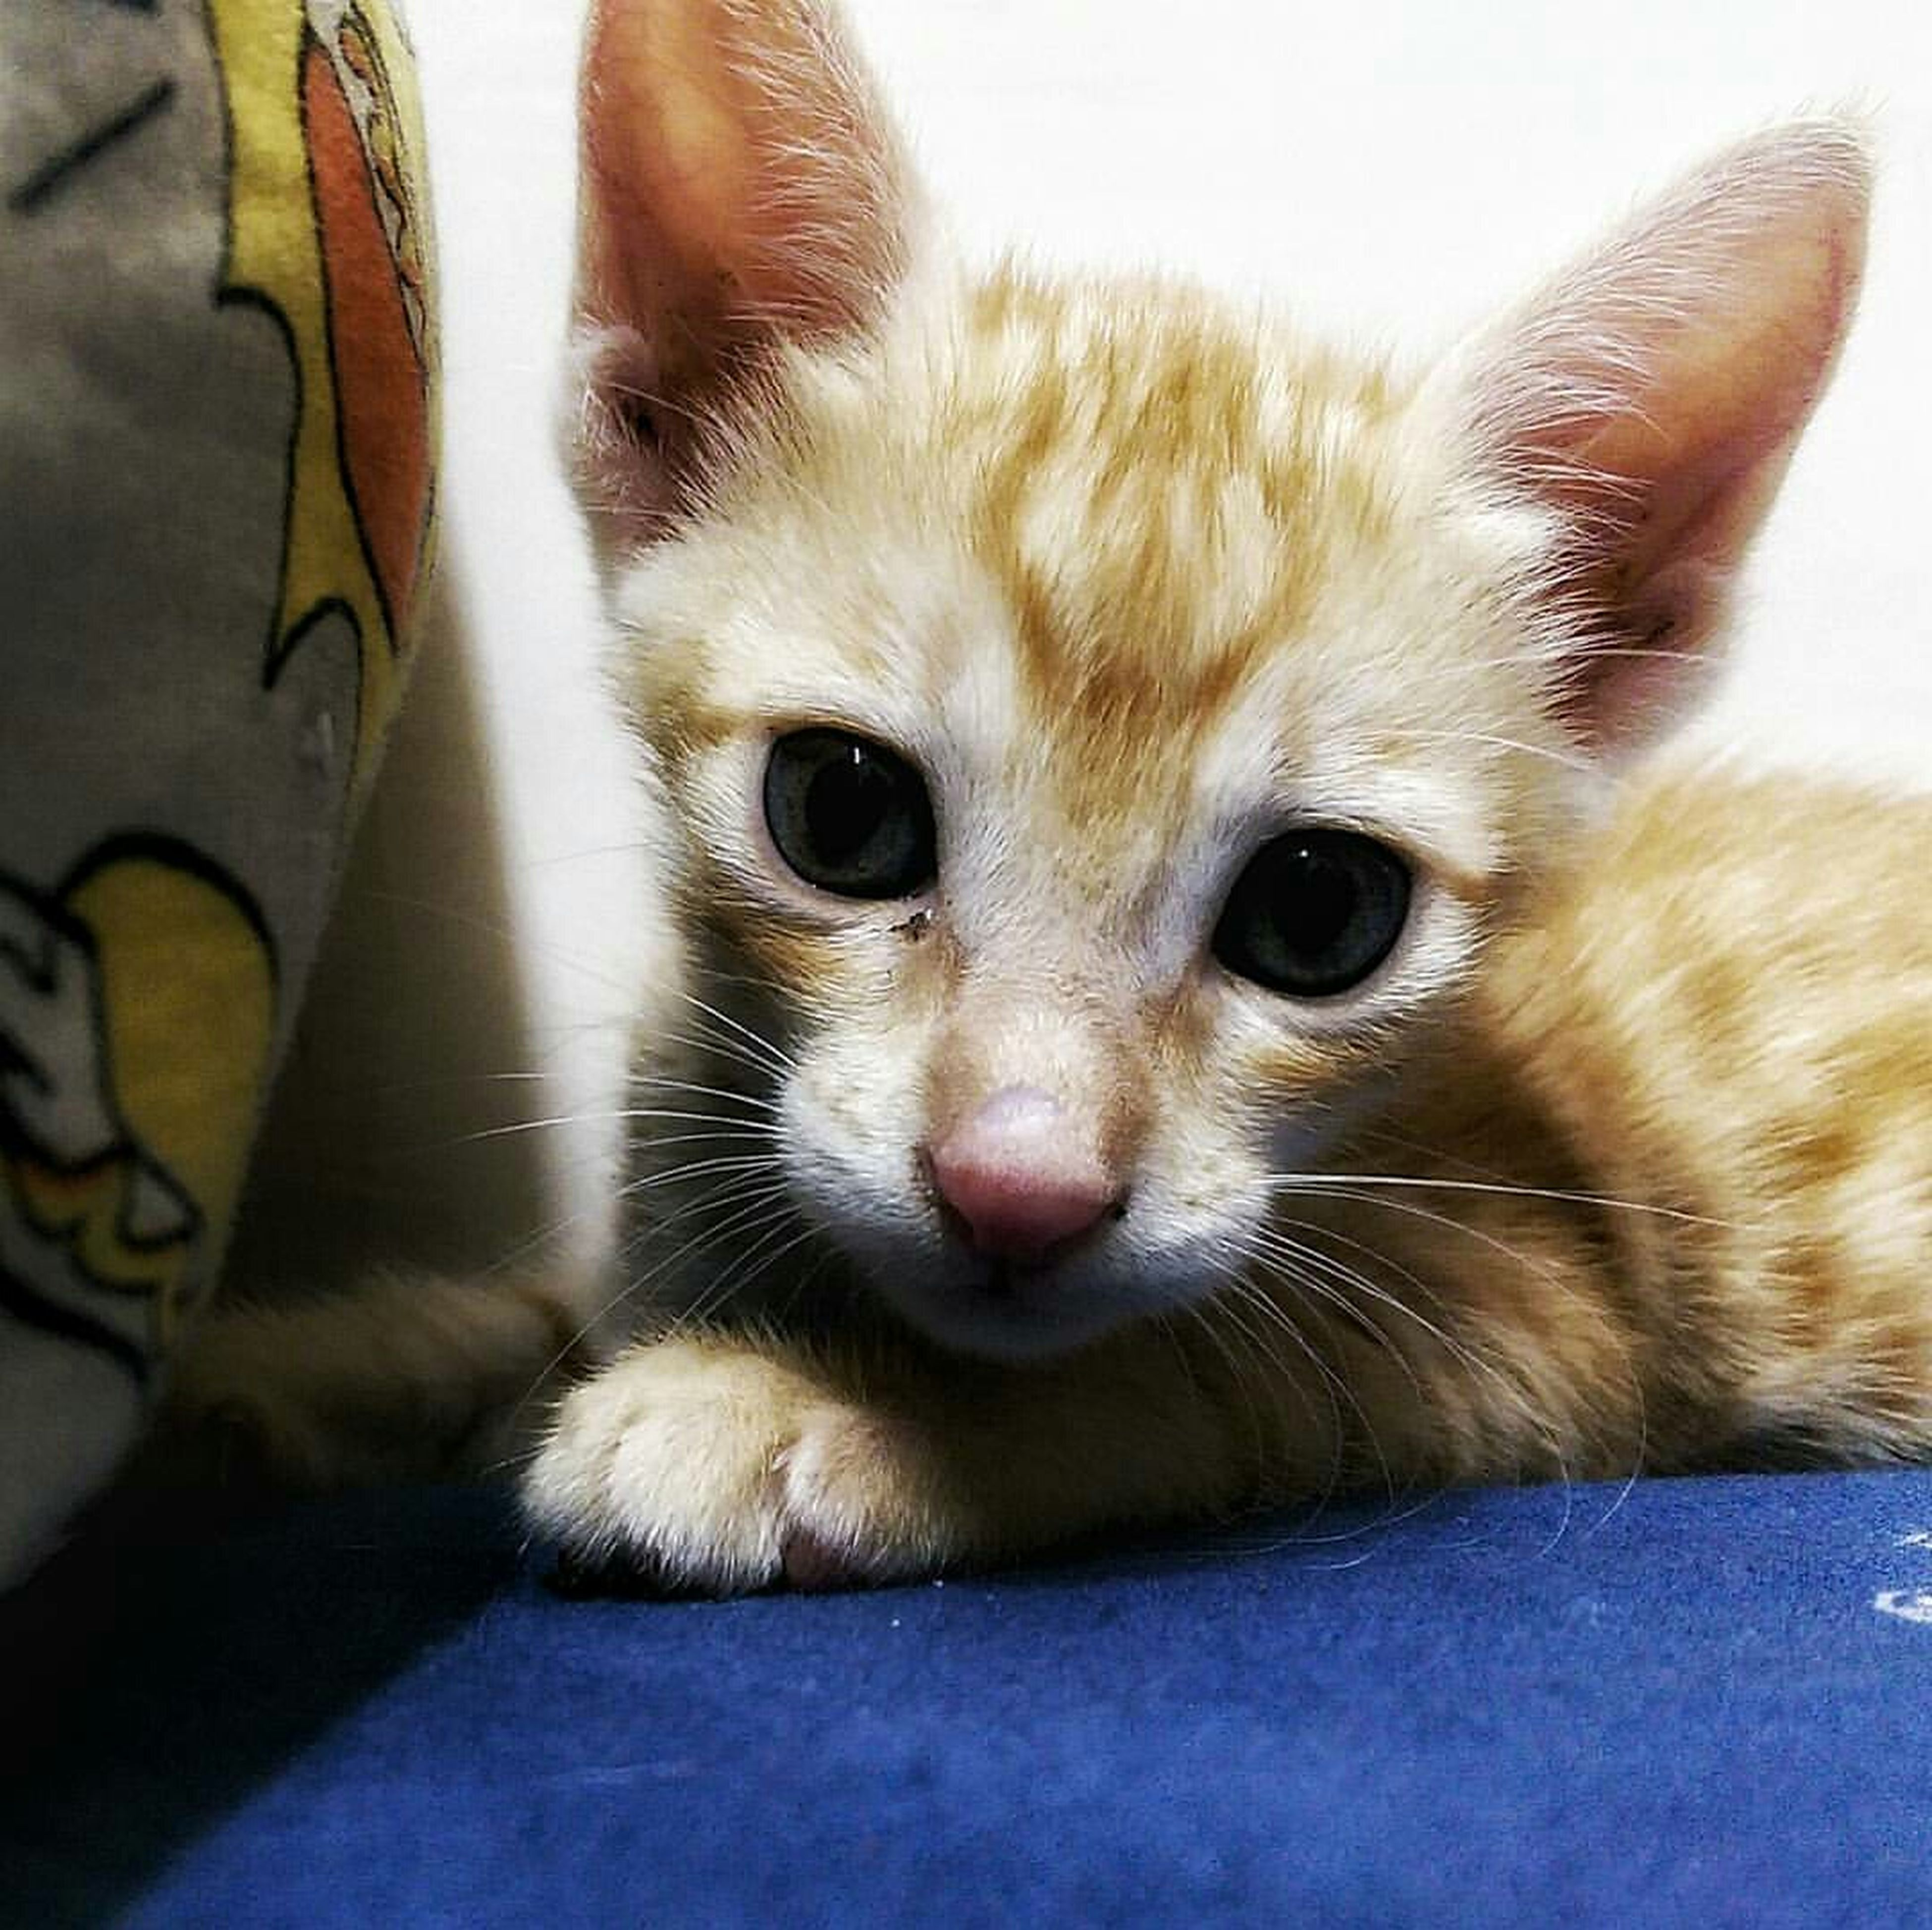 animal themes, pets, domestic animals, one animal, domestic cat, indoors, mammal, cat, portrait, looking at camera, feline, whisker, relaxation, close-up, young animal, home interior, kitten, animal head, lying down, cute